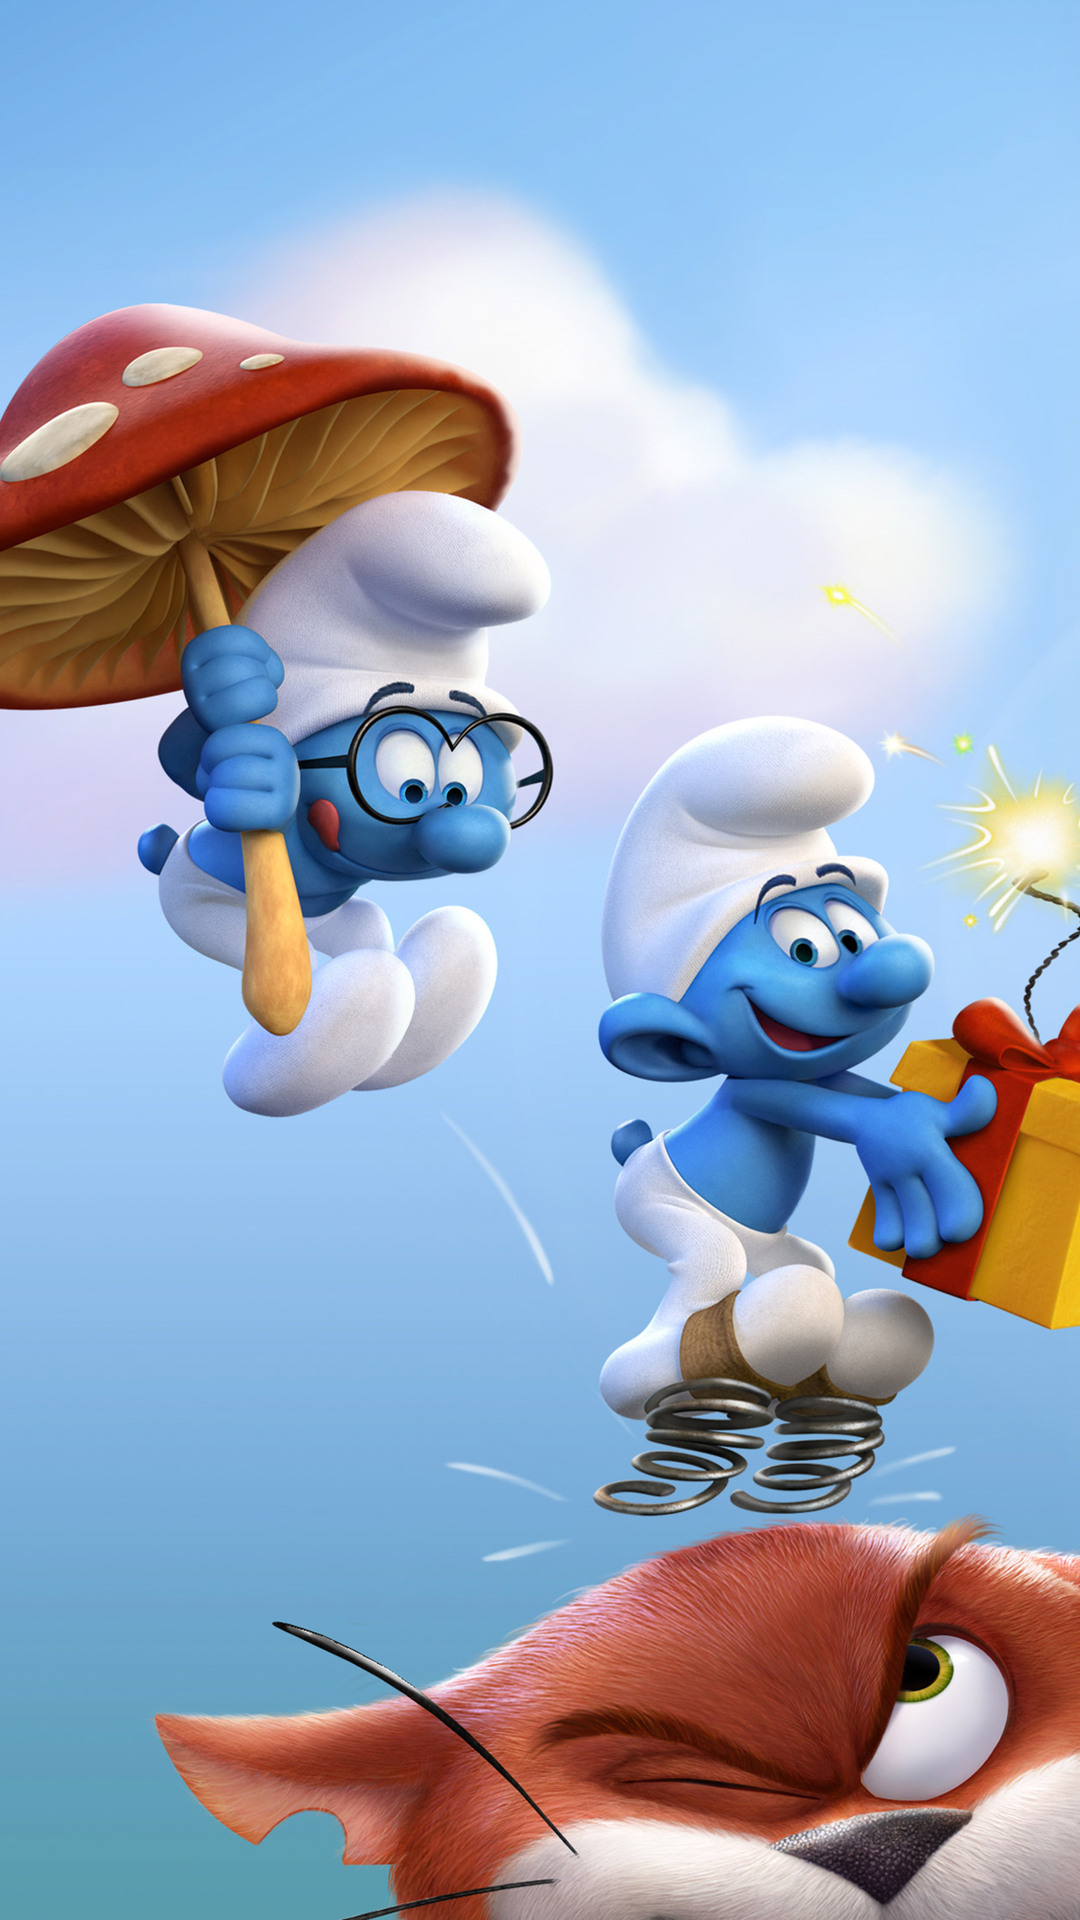 1080x1920 Smurfs The Lost Village Official Iphone 7,6s,6 ...